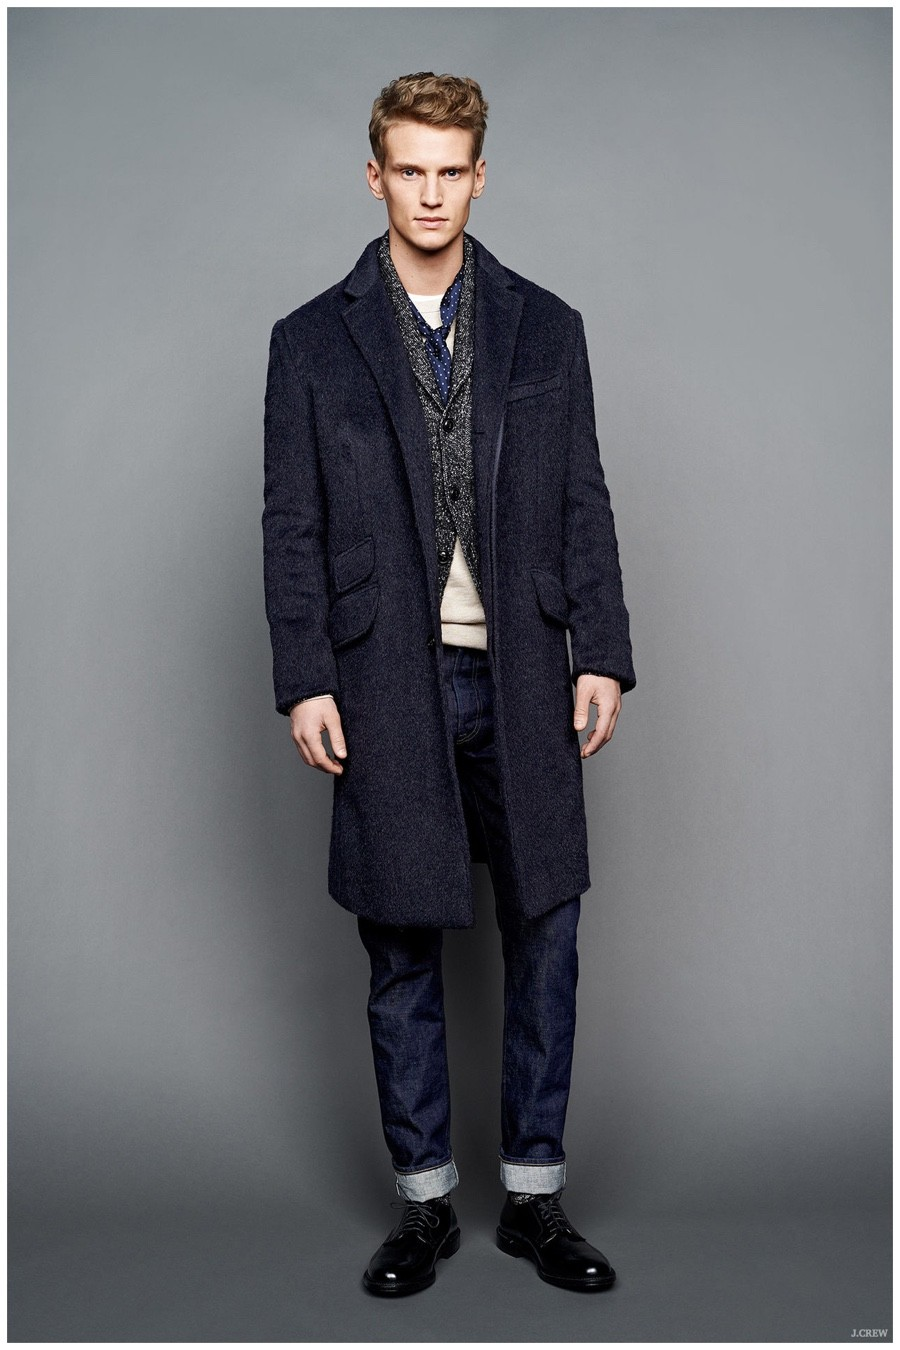 J.Crew Fall/Winter 2015